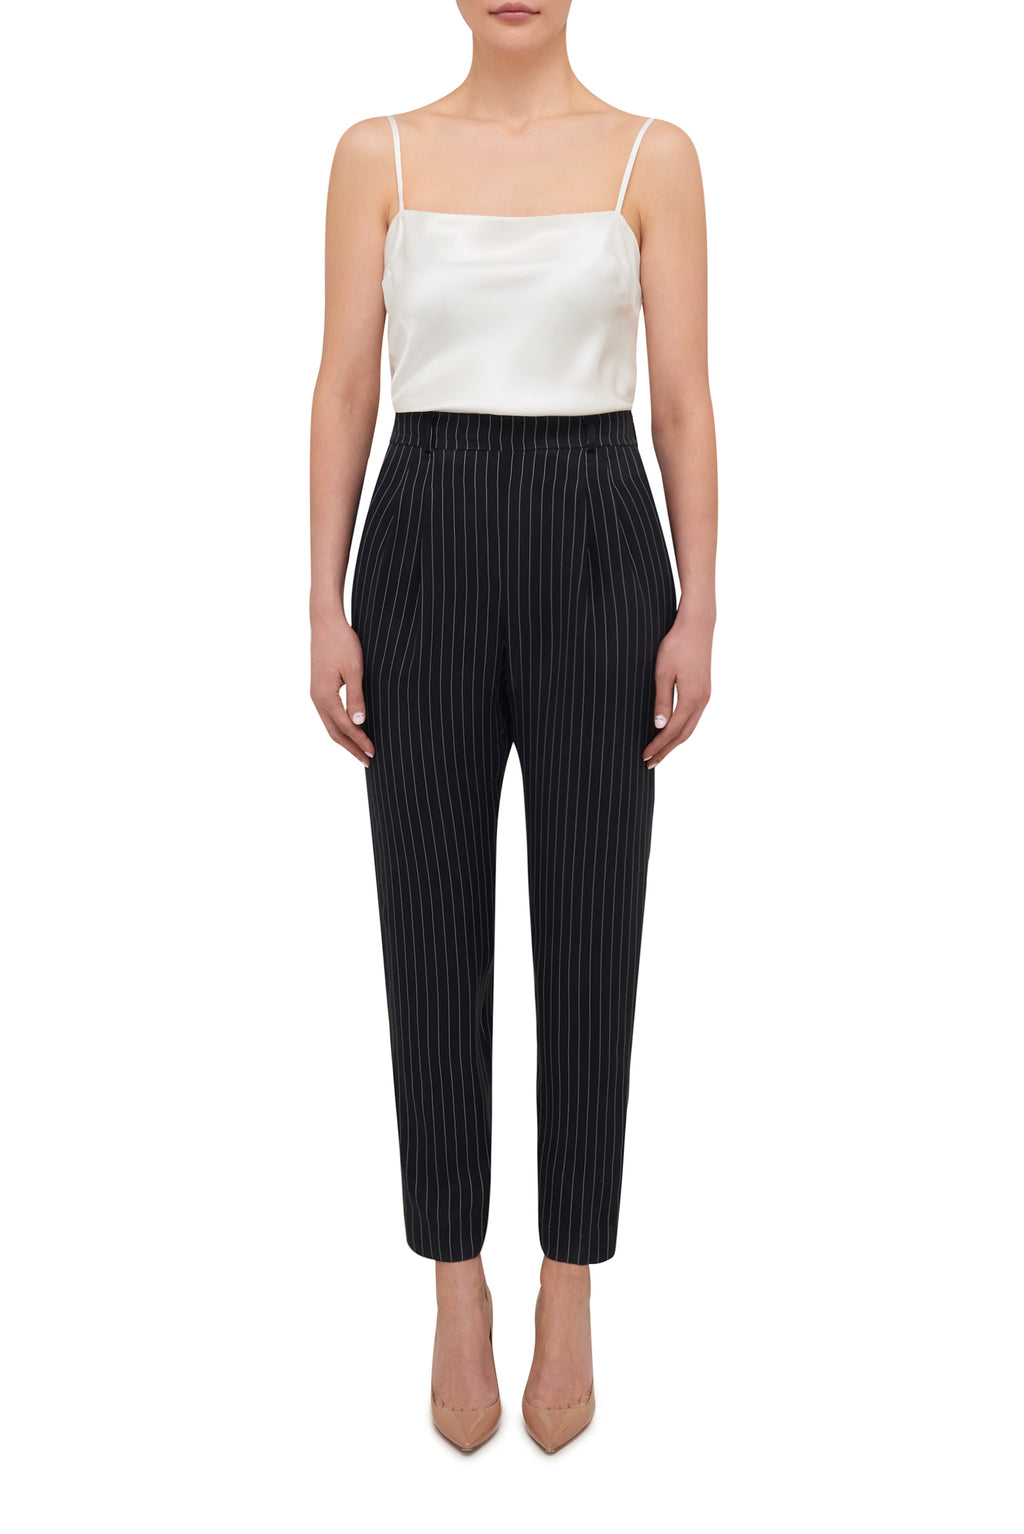 Suit Up Pinstripe Pant - Black